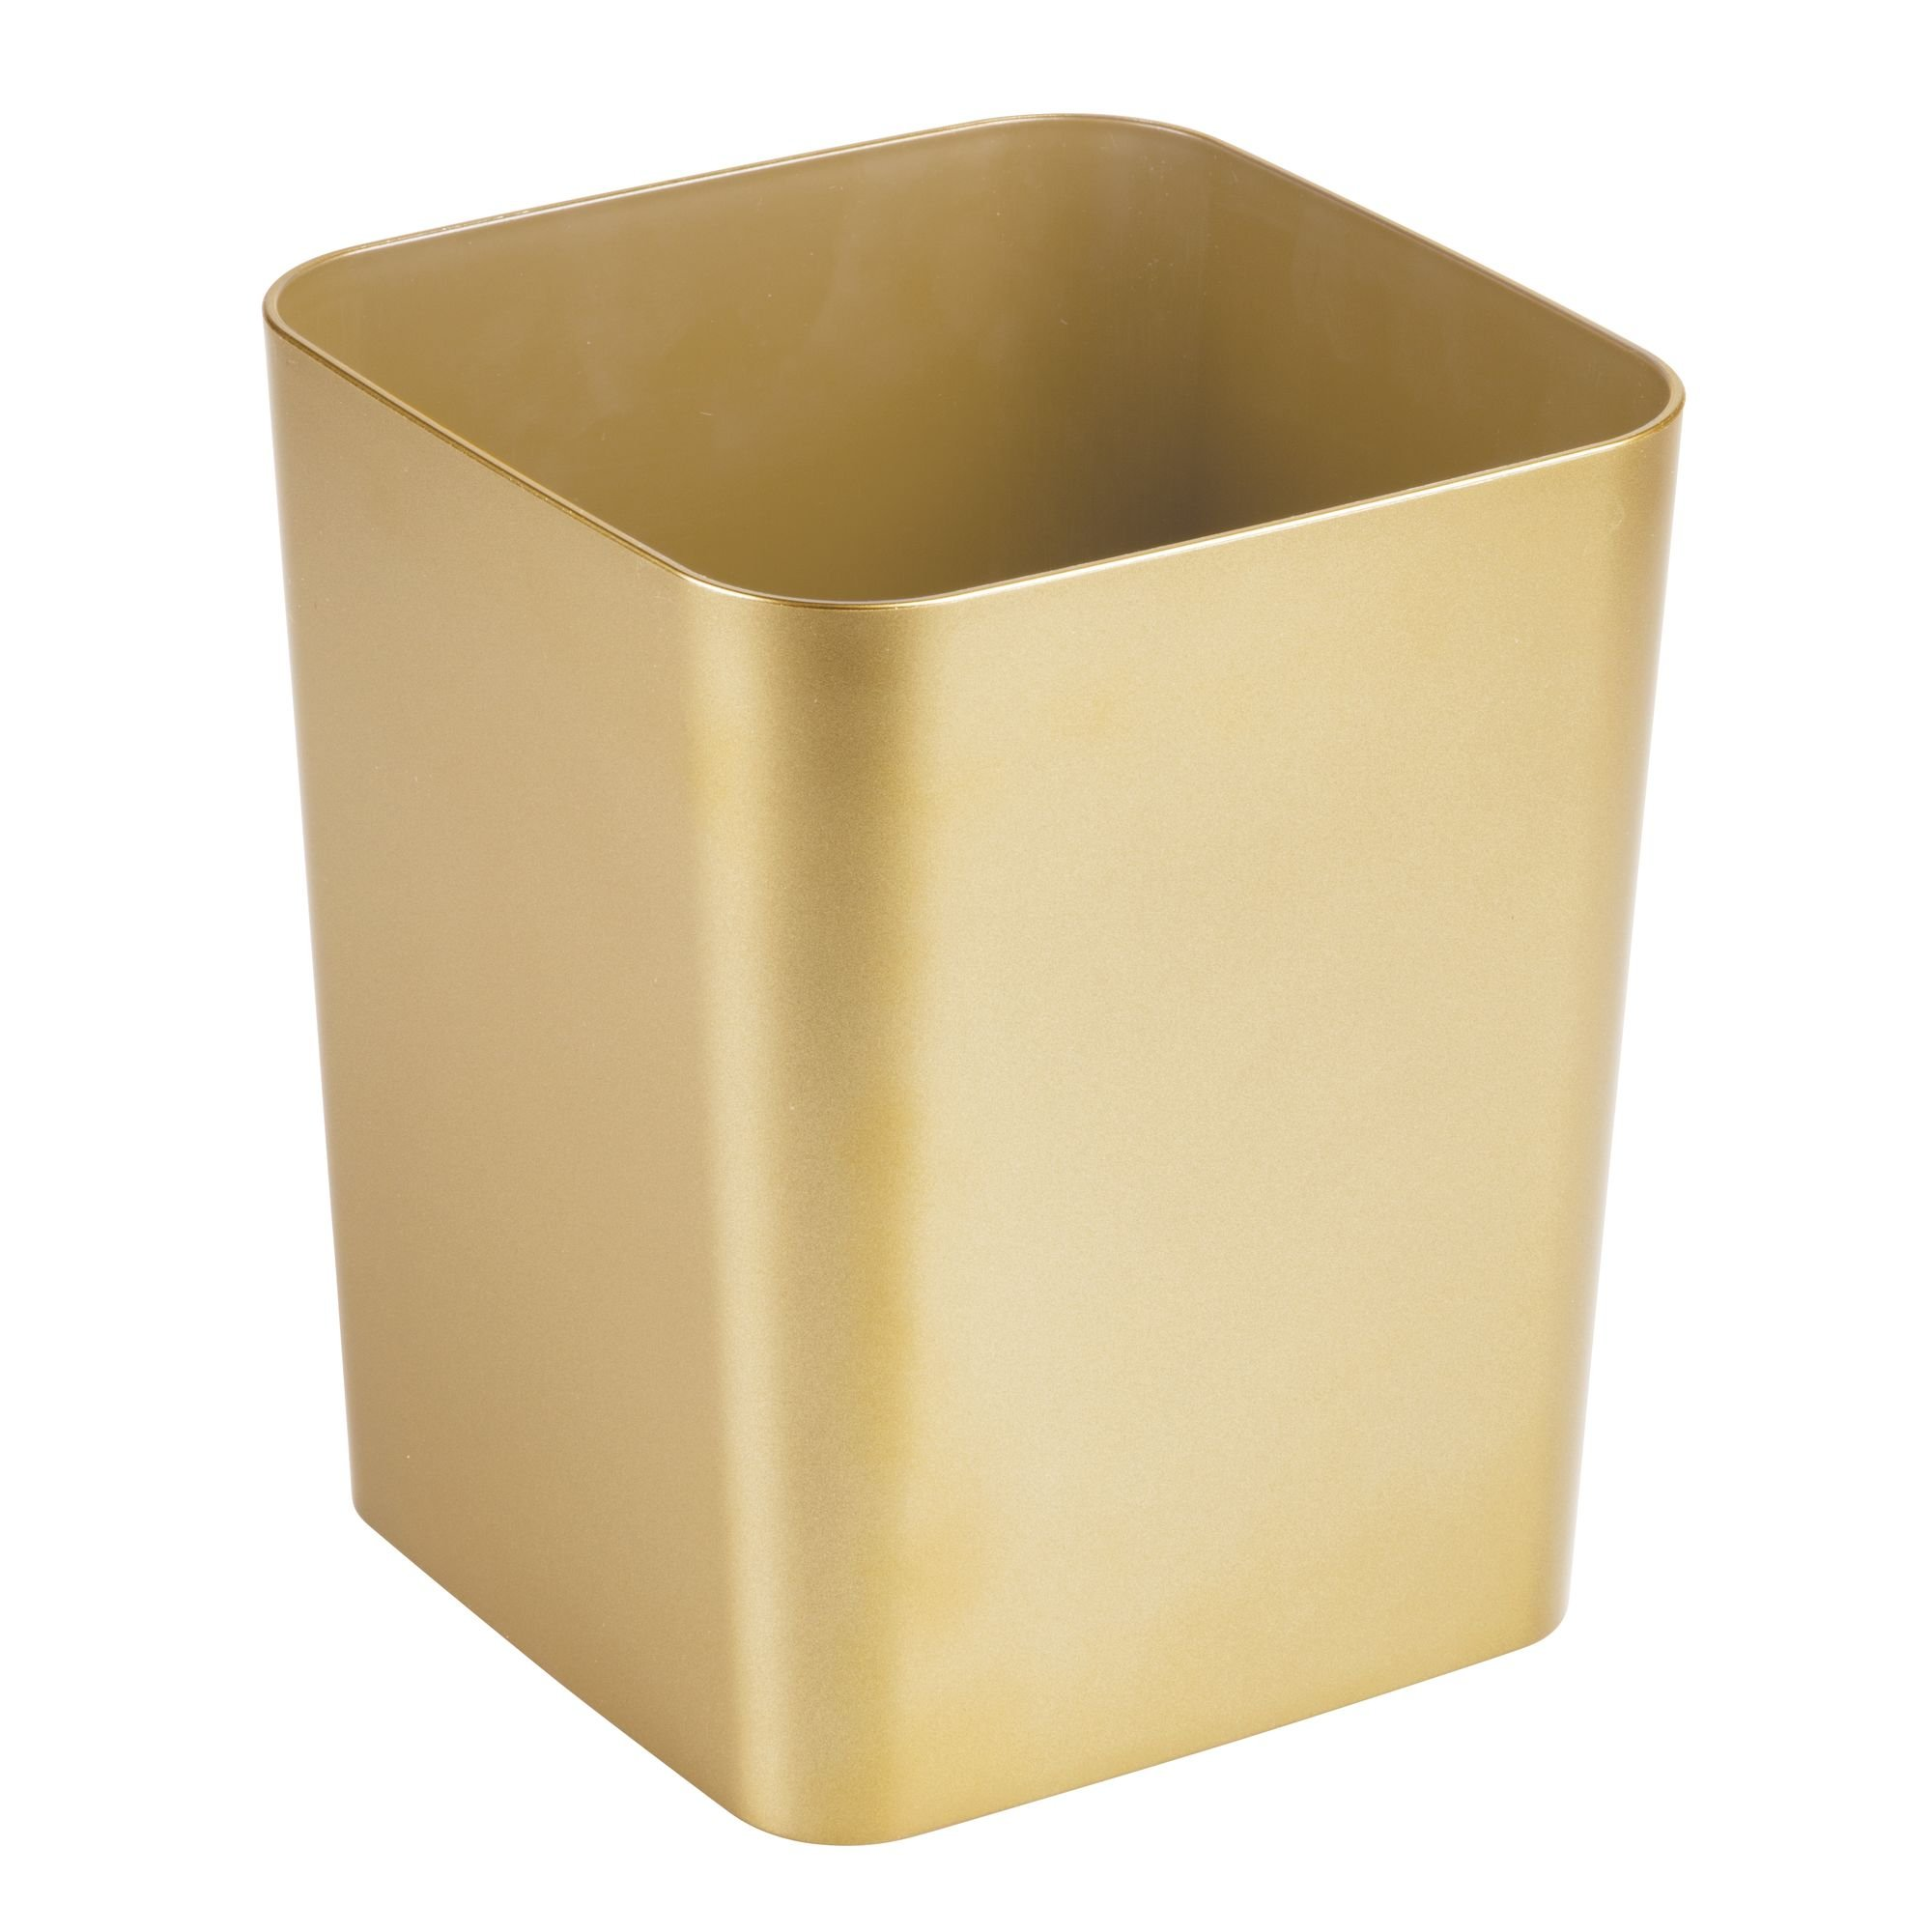 Get Quotations Mdesign Square Shatter Resistant Plastic Small Trash Can Wastebasket Garbage Container Bin For Bathrooms